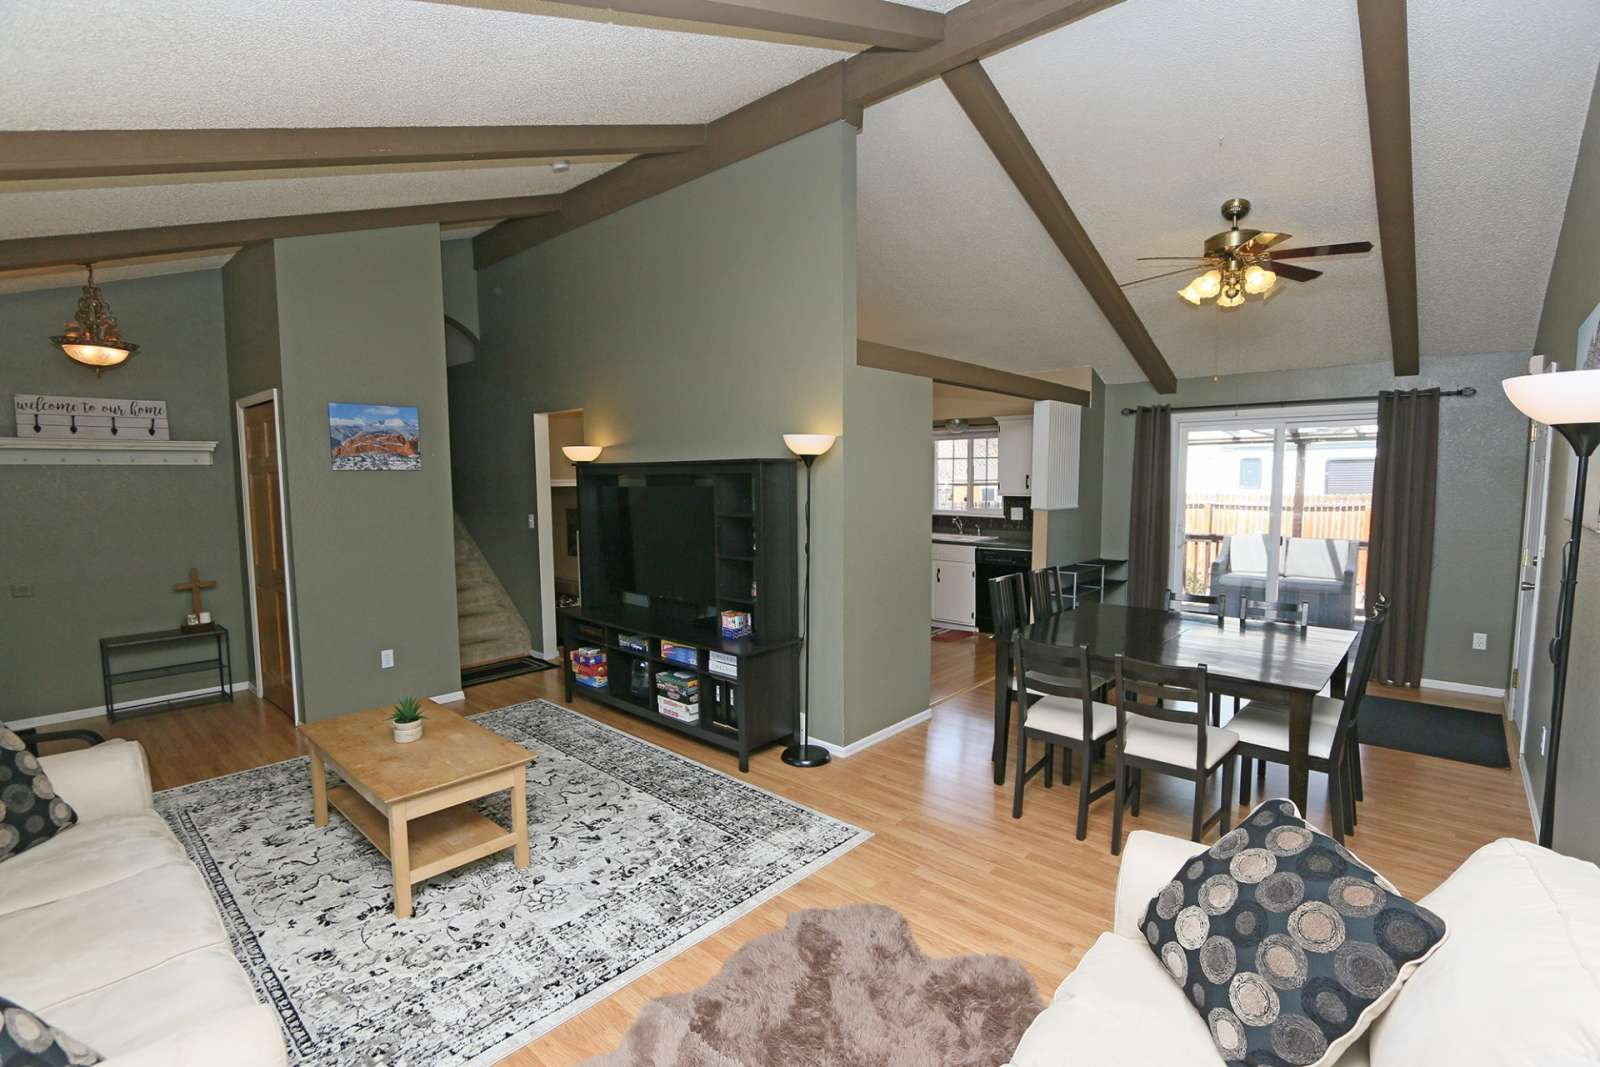 pet friendly 3 bedroom house for rent near me